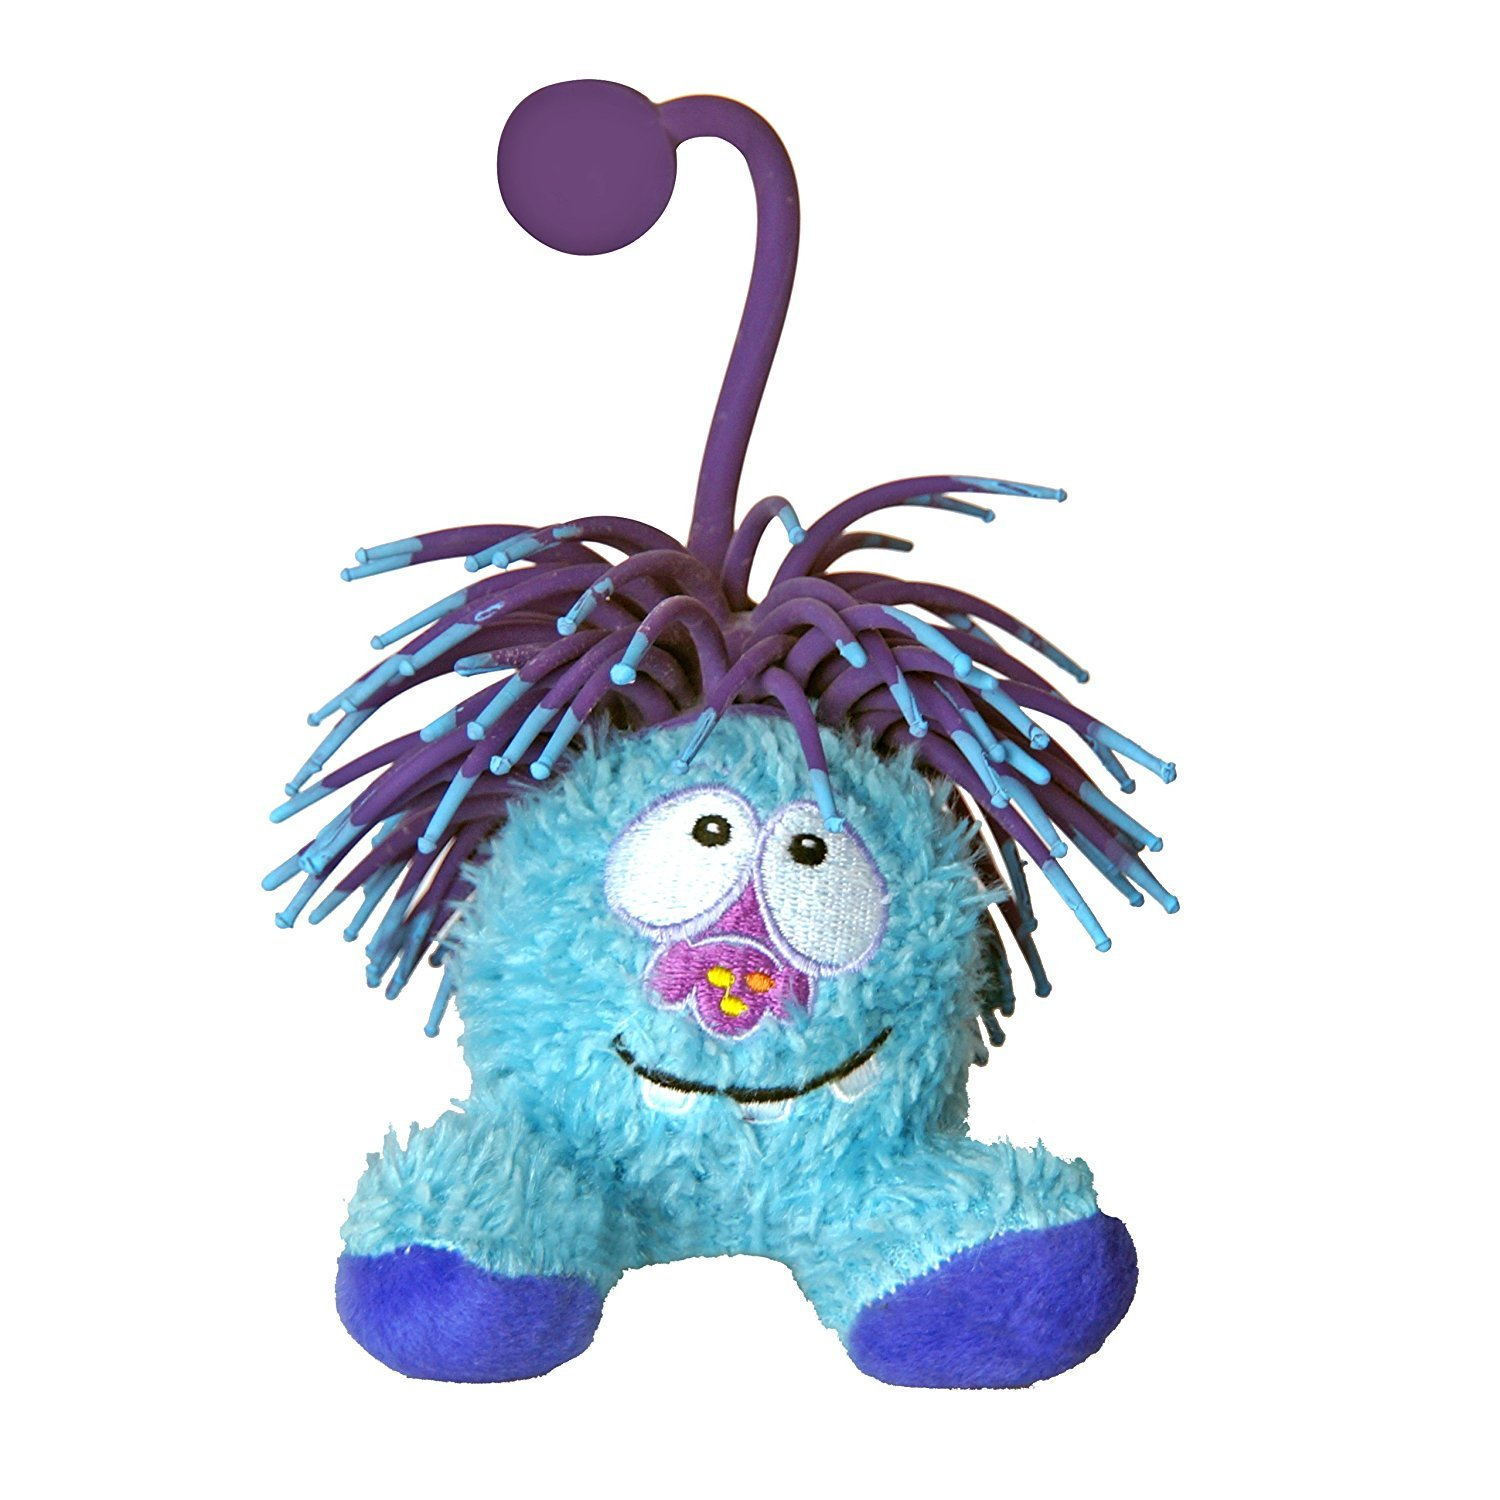 Yo-Yo Zibbies for Pets Snap Plush Toy with Crazy Hair Squeaker and Launcher